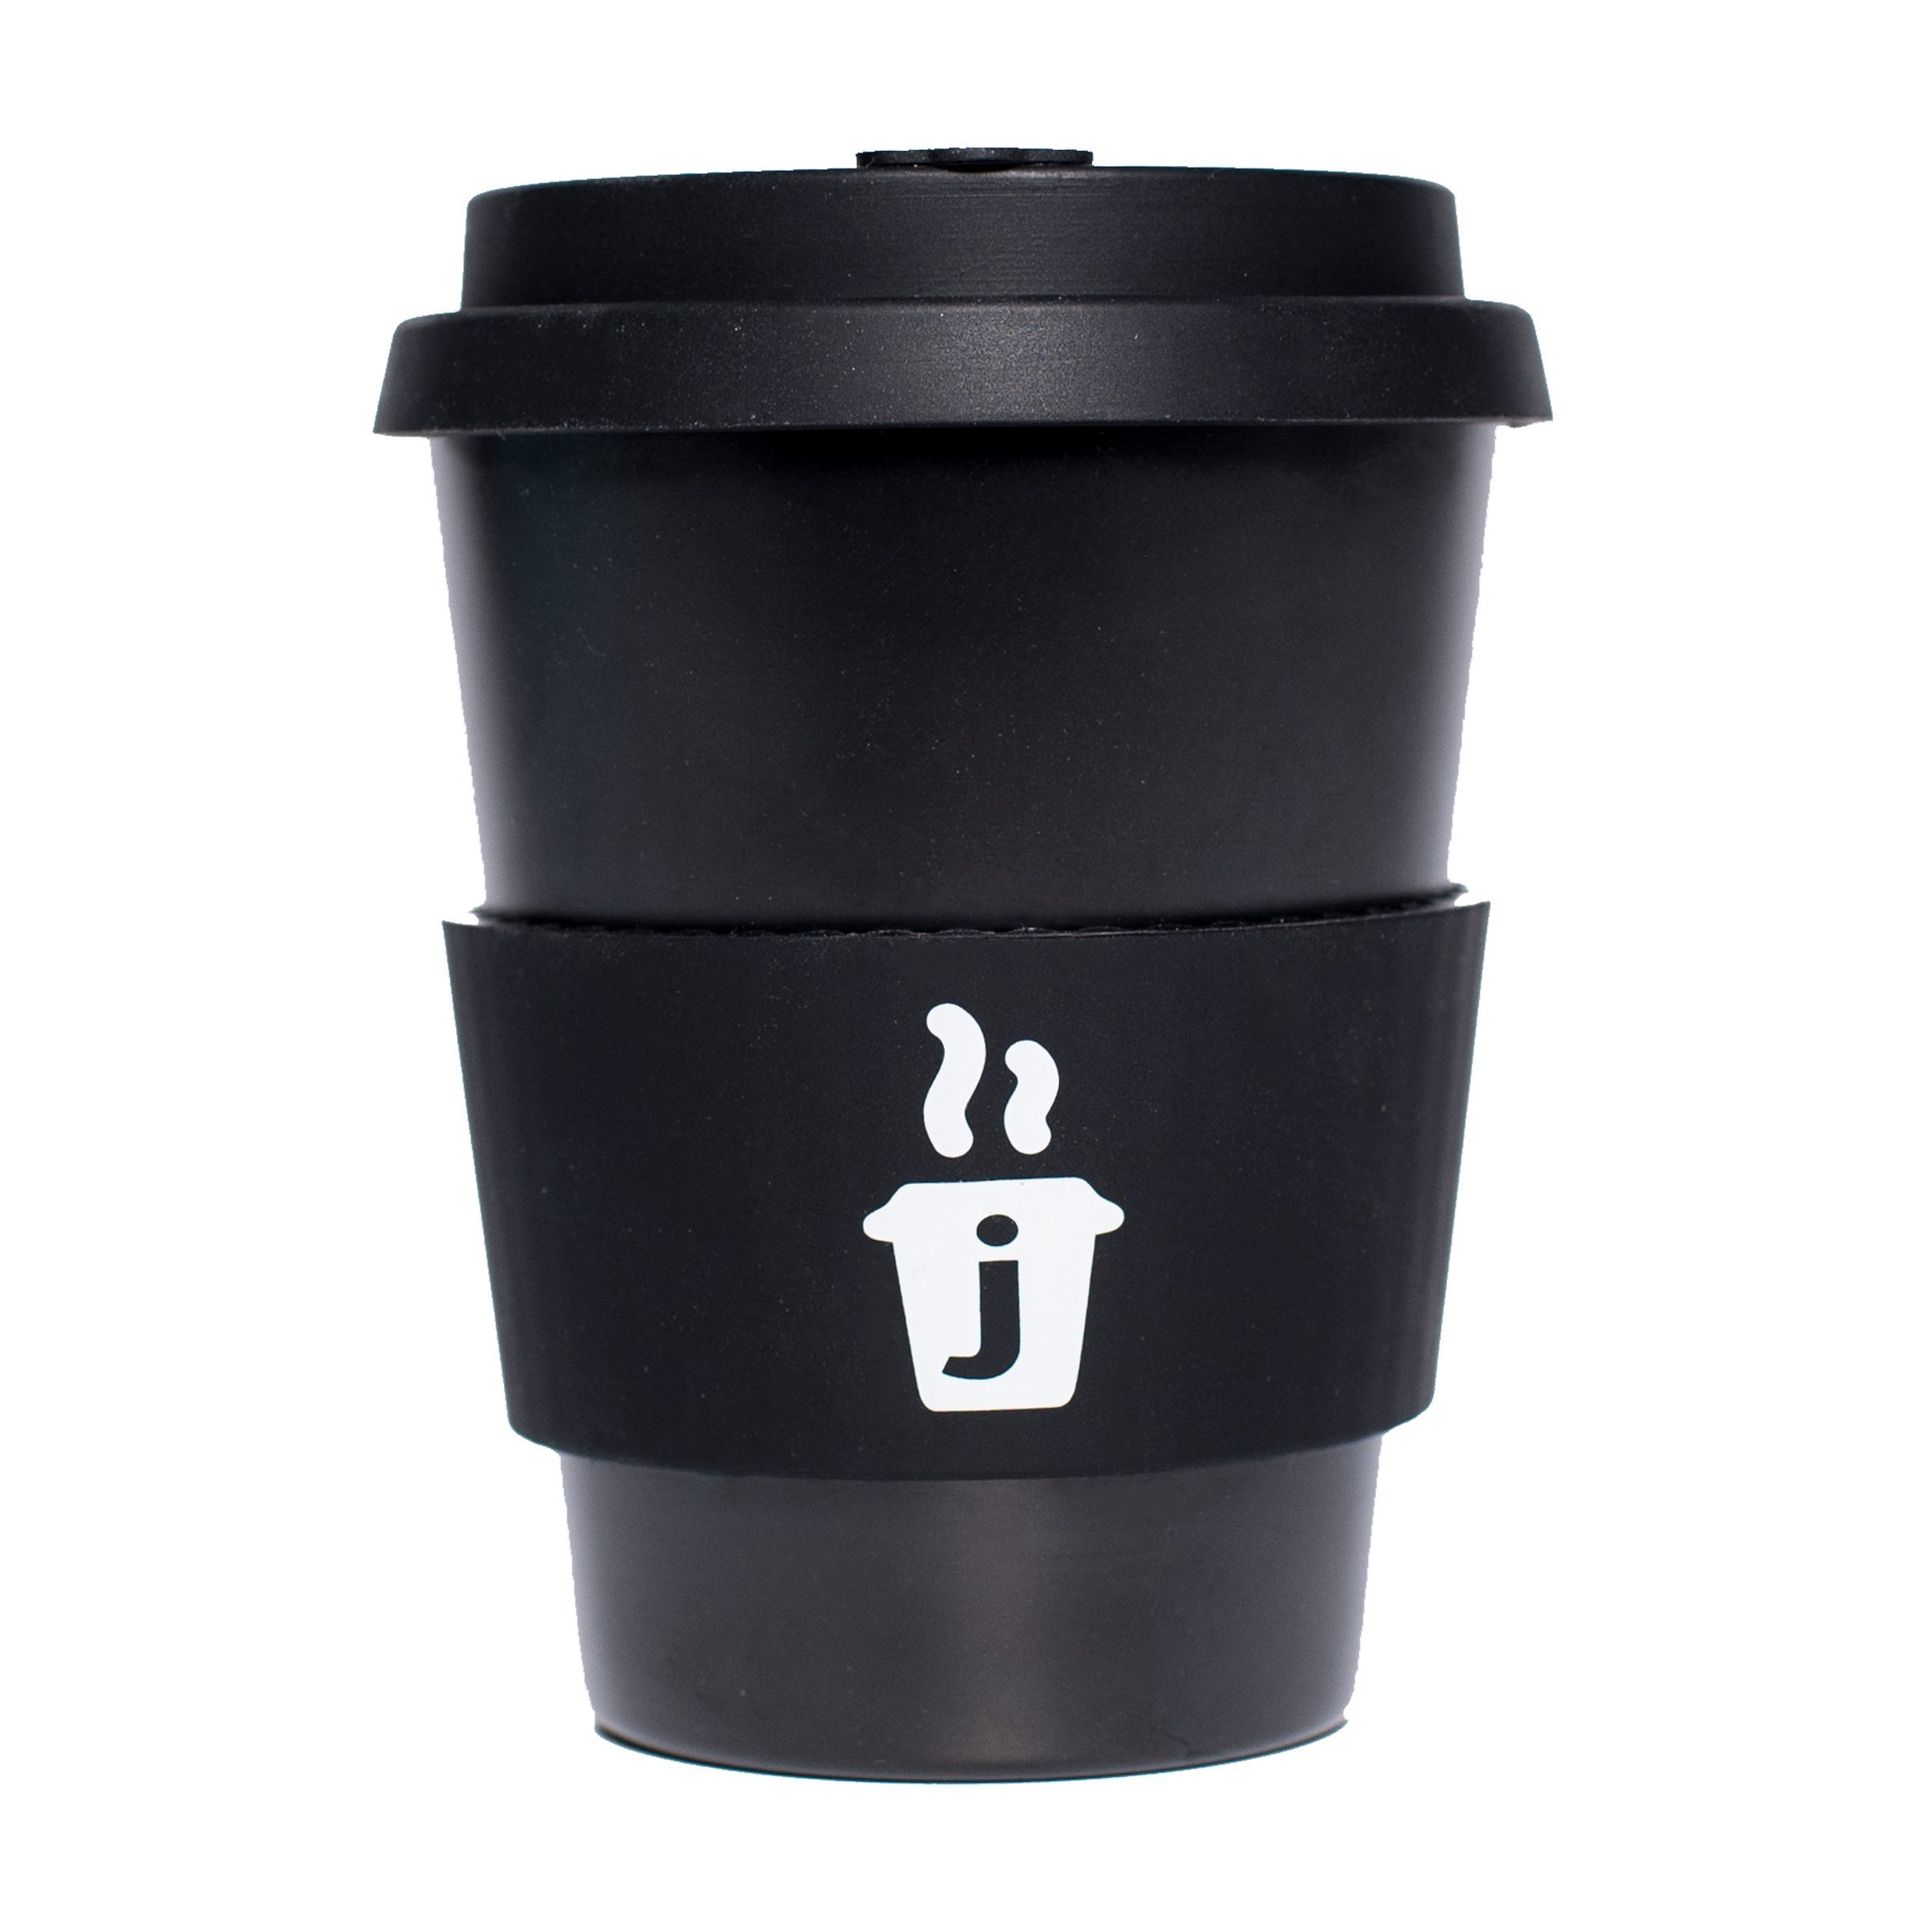 Joe Cup Premium Organic Reusable Bamboo Coffee Cup, Coffee Mug with Quick Seal Spill Stopper